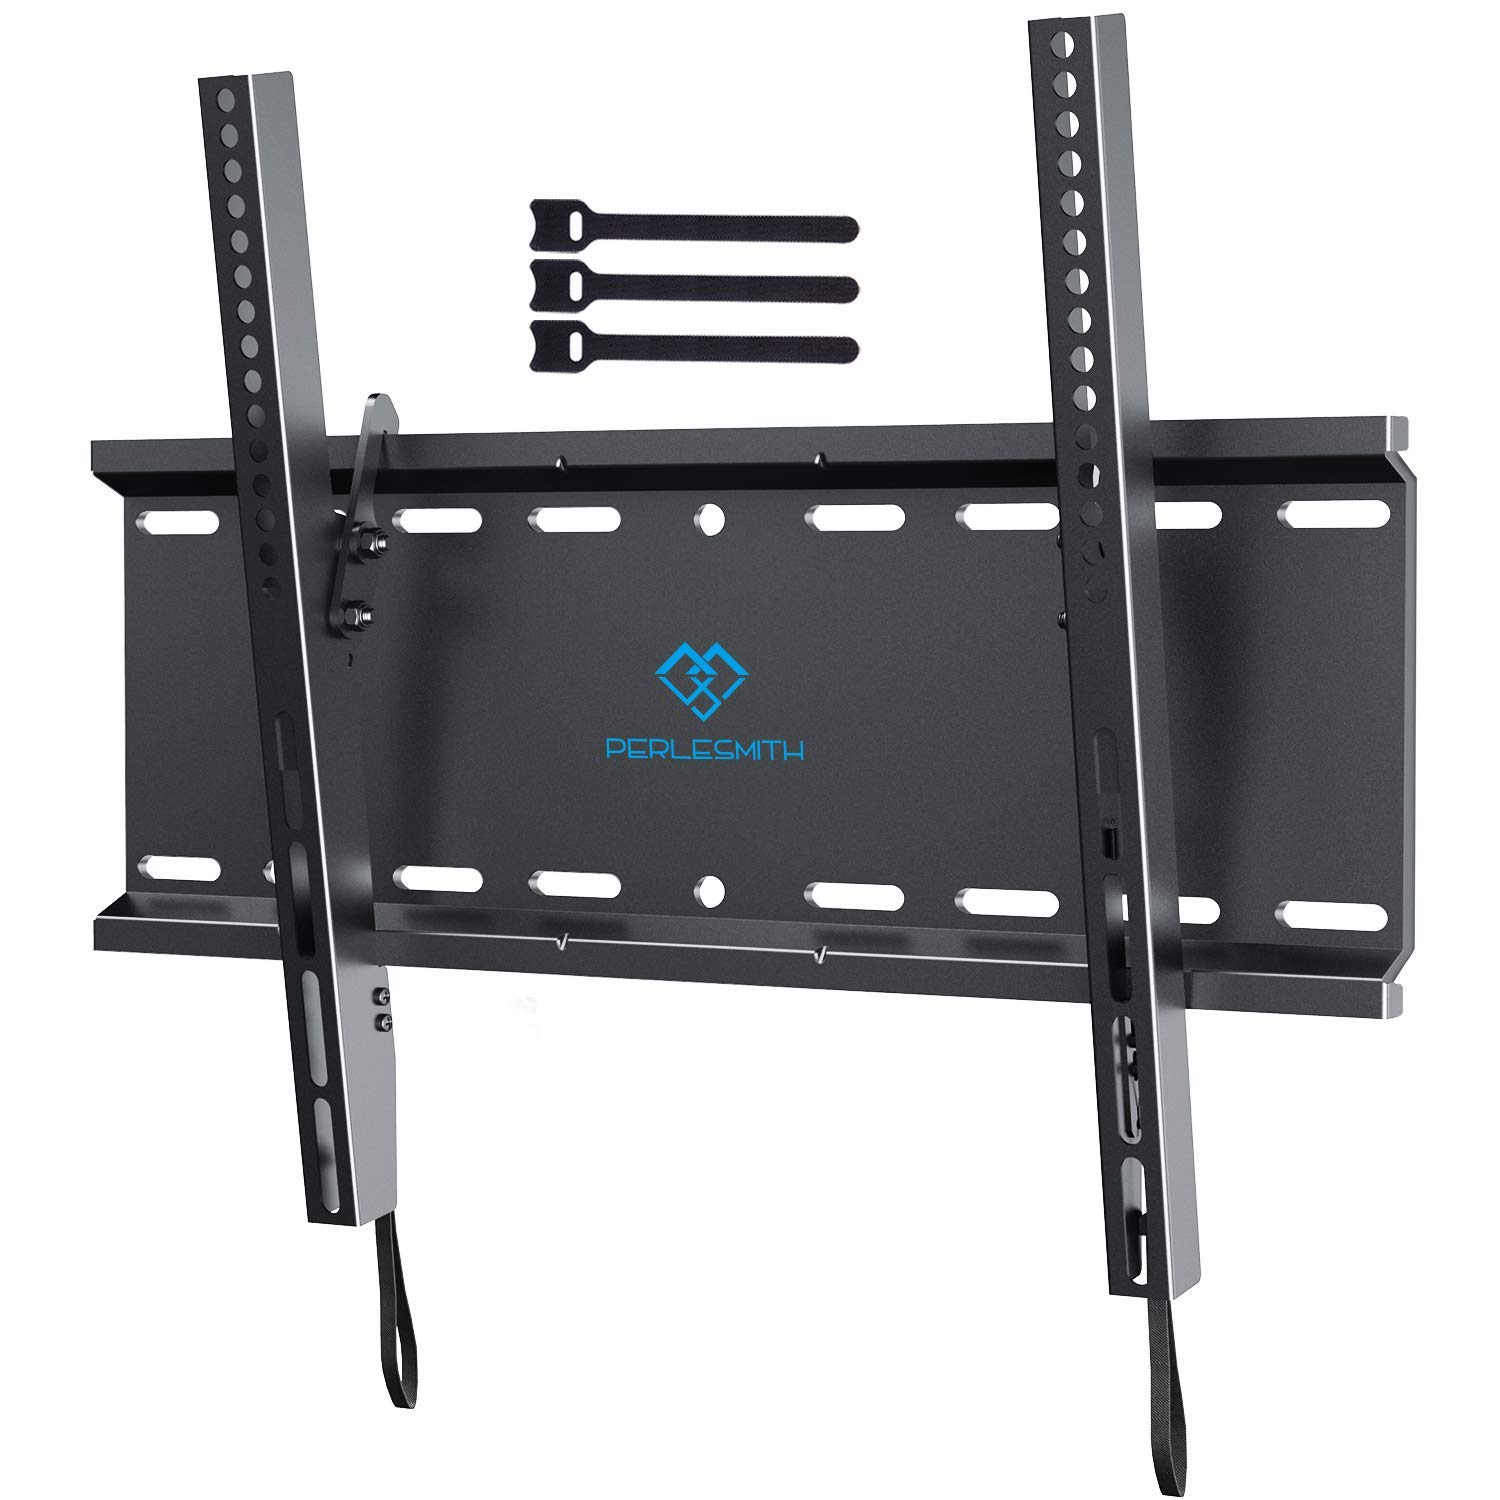 Tilting TV Wall Mount Bracket Low Profile for Most 23-55 Inch LED, LCD, OLED, Plasma Flat Screen TVs with VESA 400x400mm Weight up to 115lbs by PERLESMITH by PERLESMITH